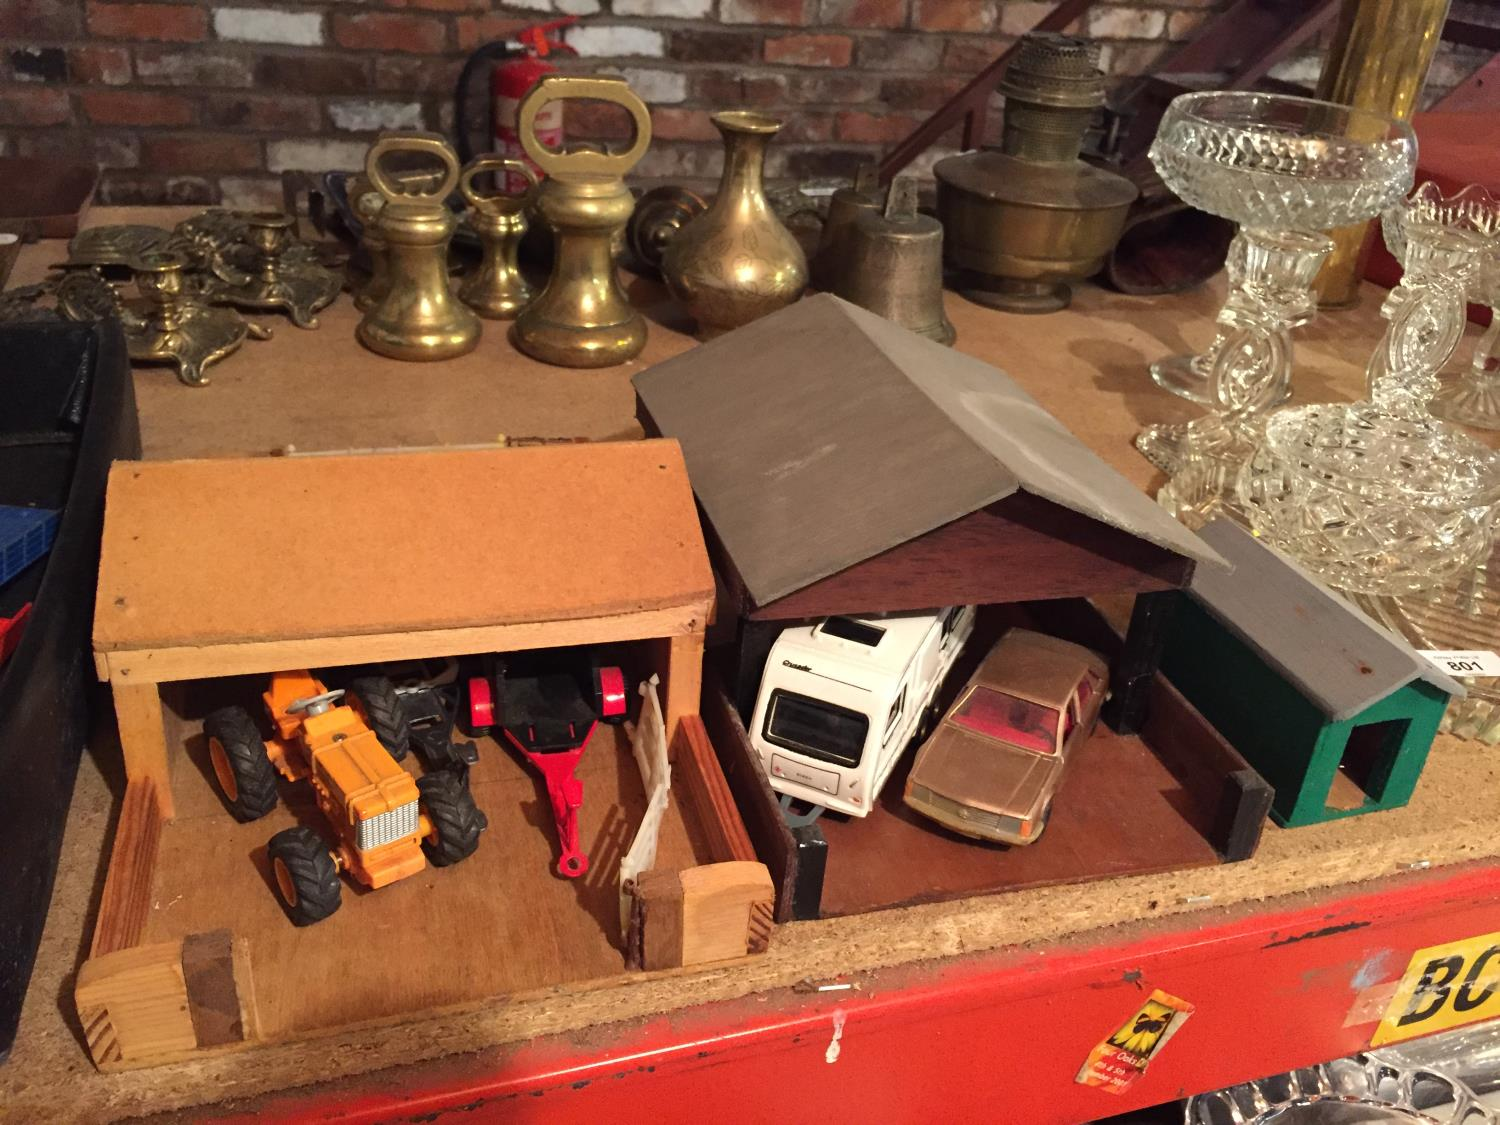 THREE WOODEN BUILDINGS WITH VEHICLES TO INCLUDE A TRACTOR AND TRAILERS, CARAVAN,CAR